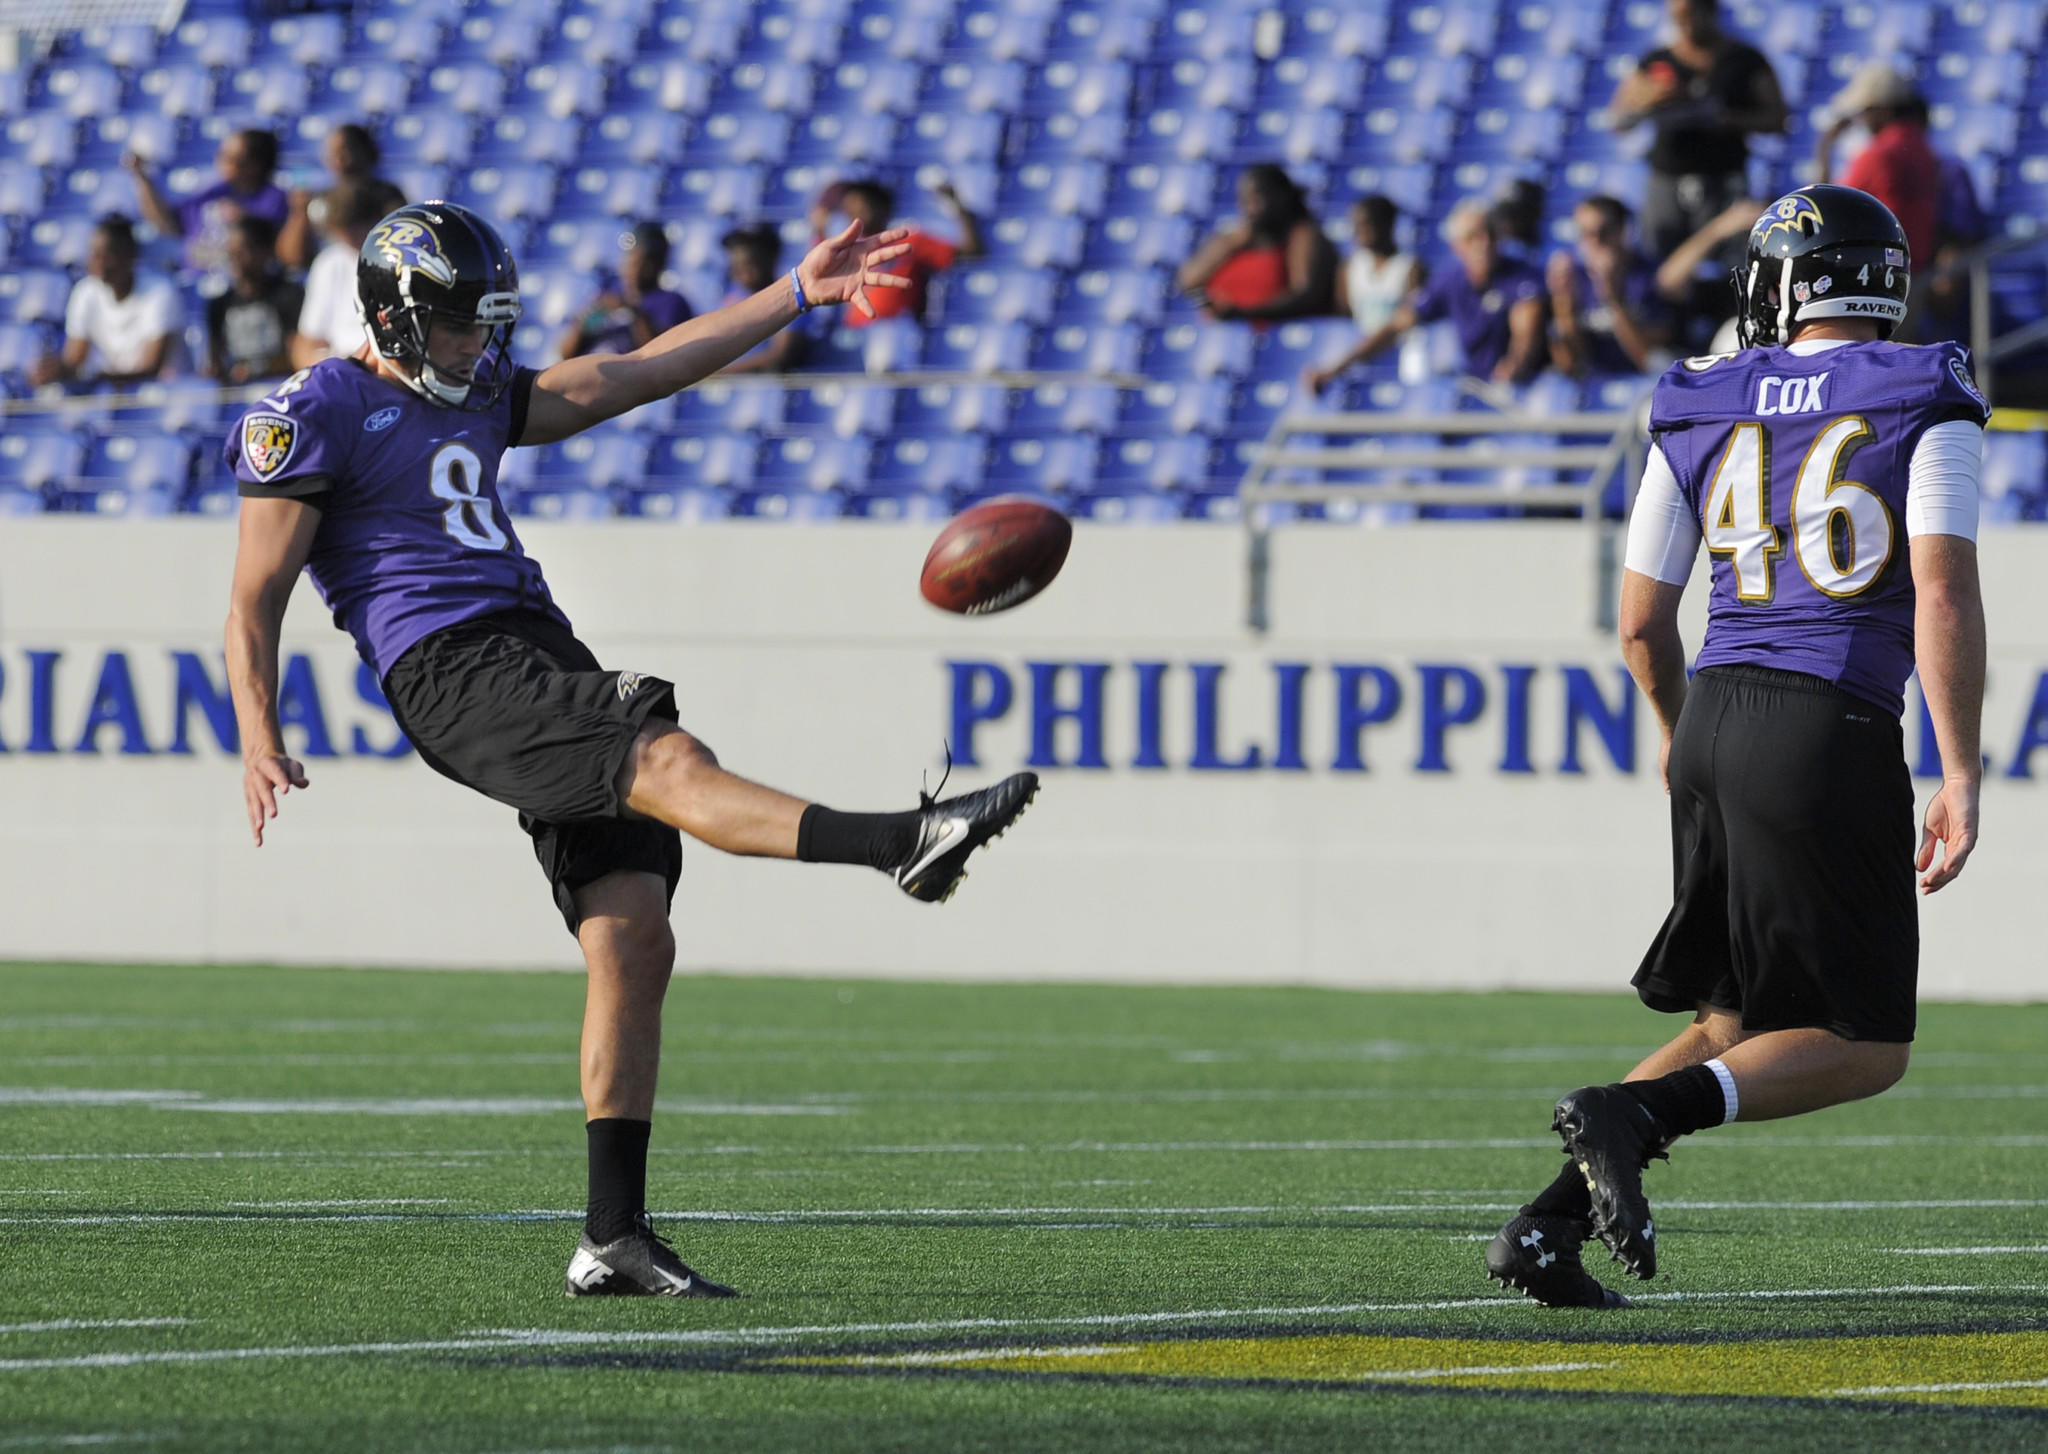 Ravens punter Richie Leone punts at practice during the open practice at Navy-Marine Corps Memorial Stadium on Monday.